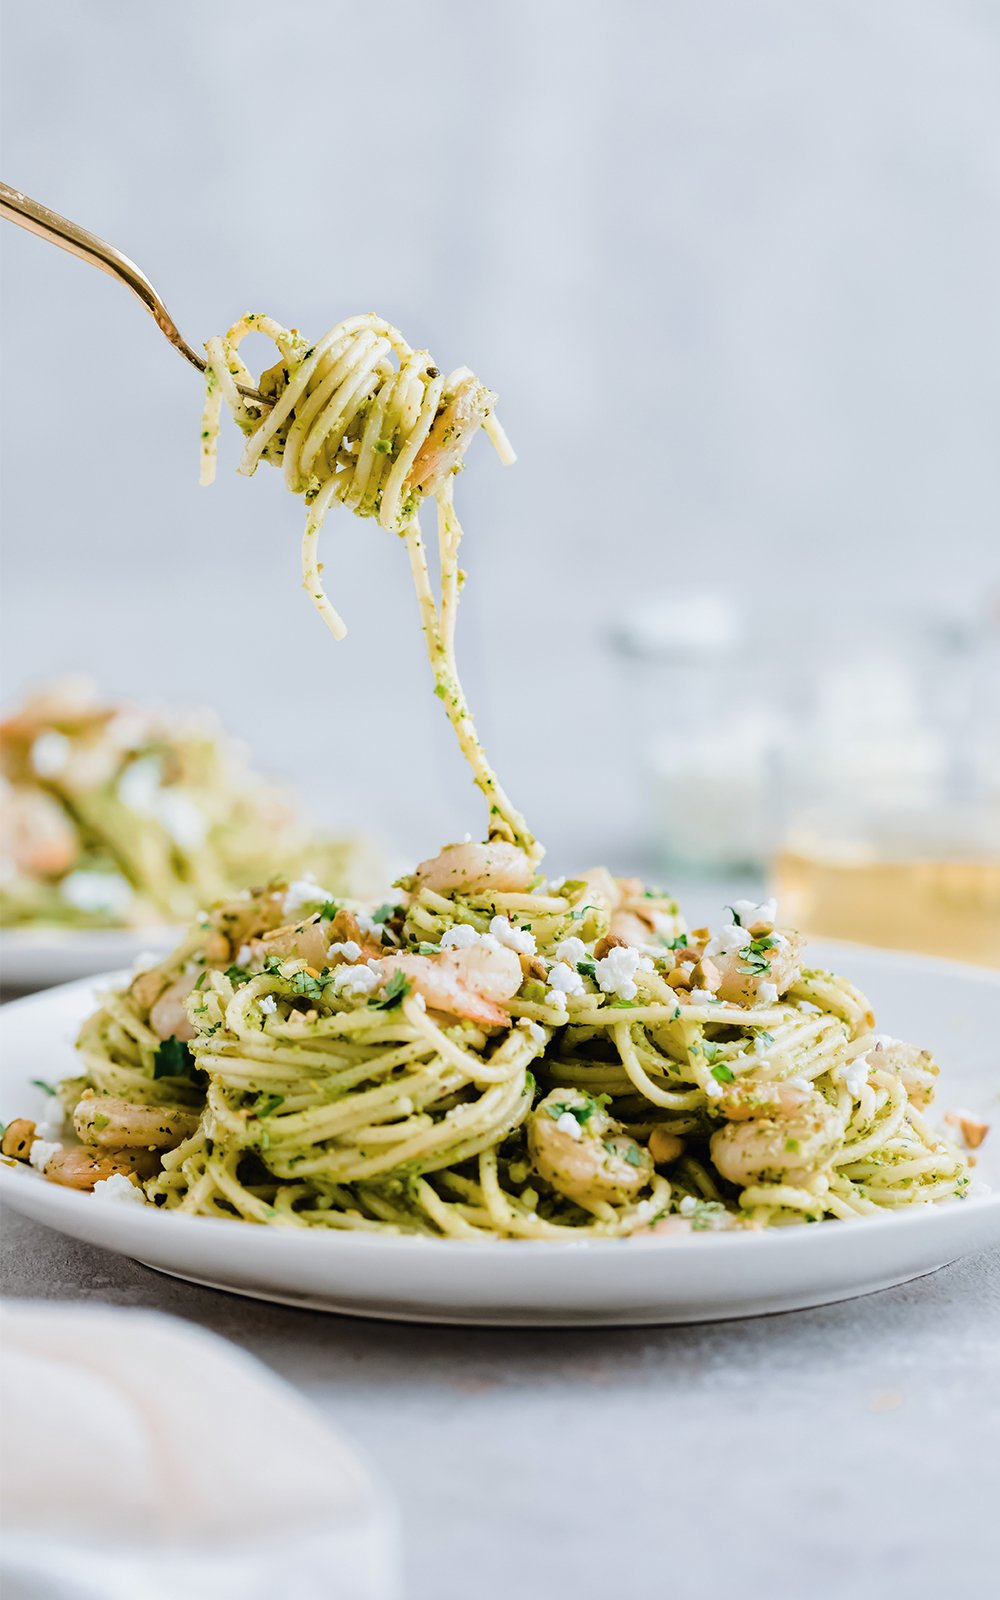 Pesto shrimp pasta with a crazy good fresh cilantro pistachio pesto